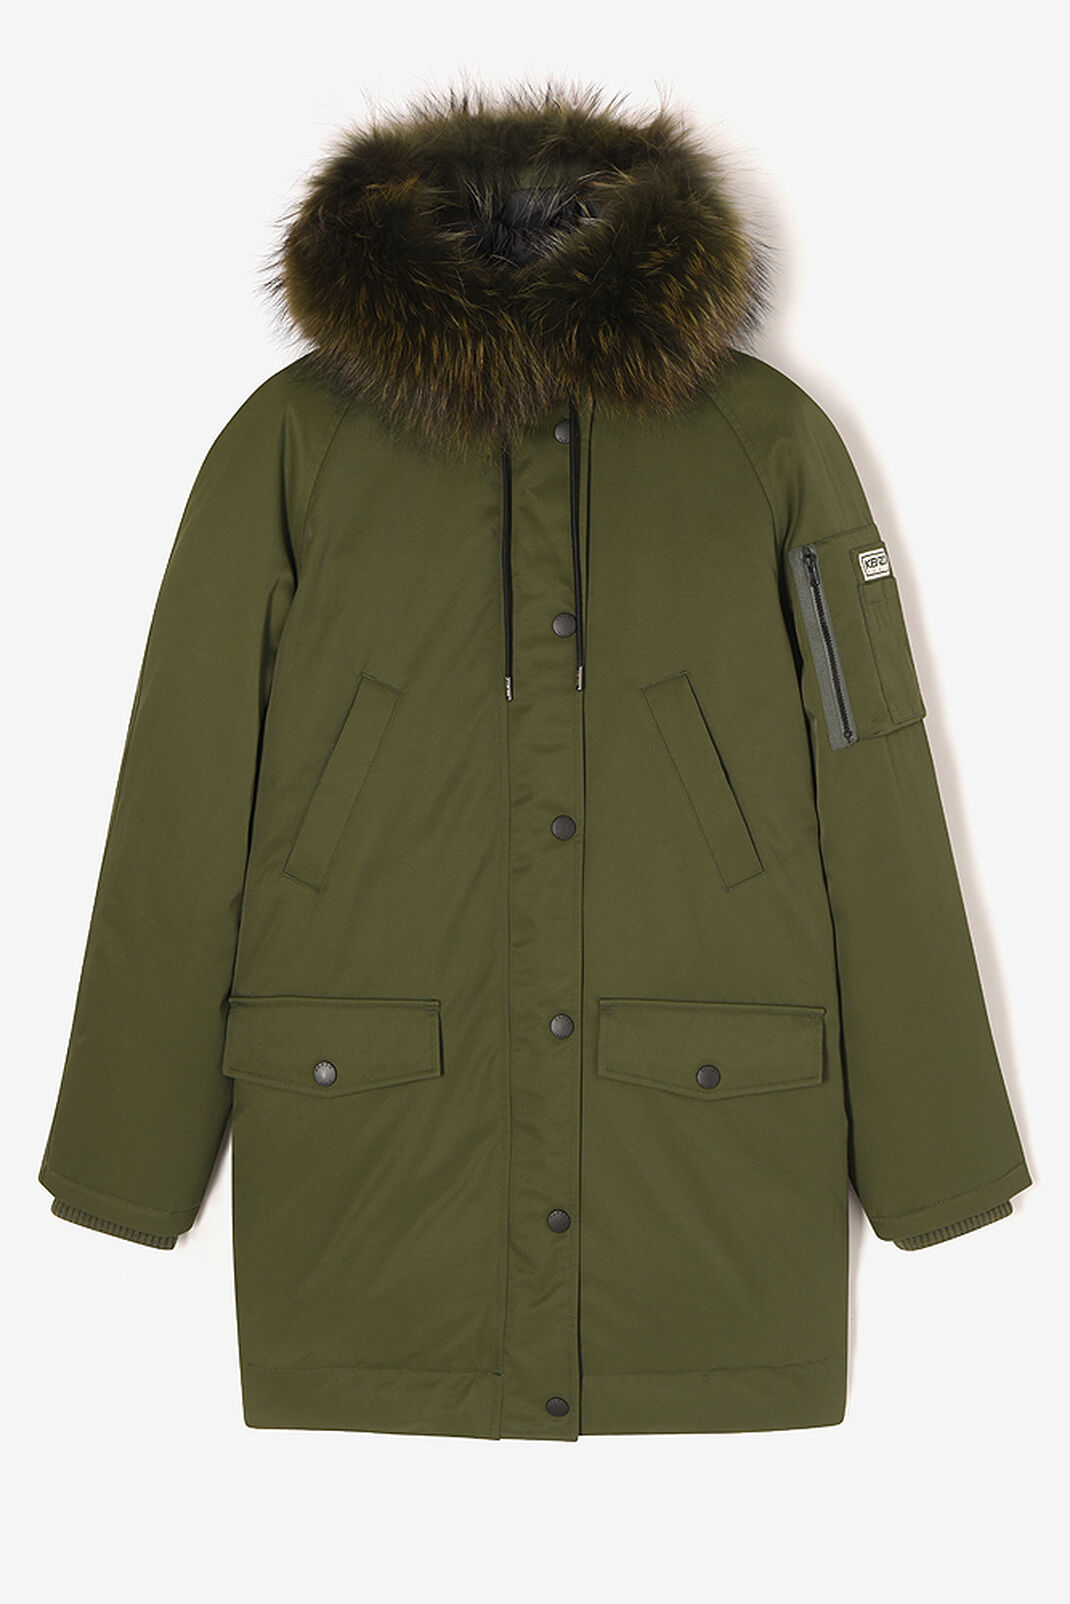 DARK KHAKI Puffa' Parka for women KENZO